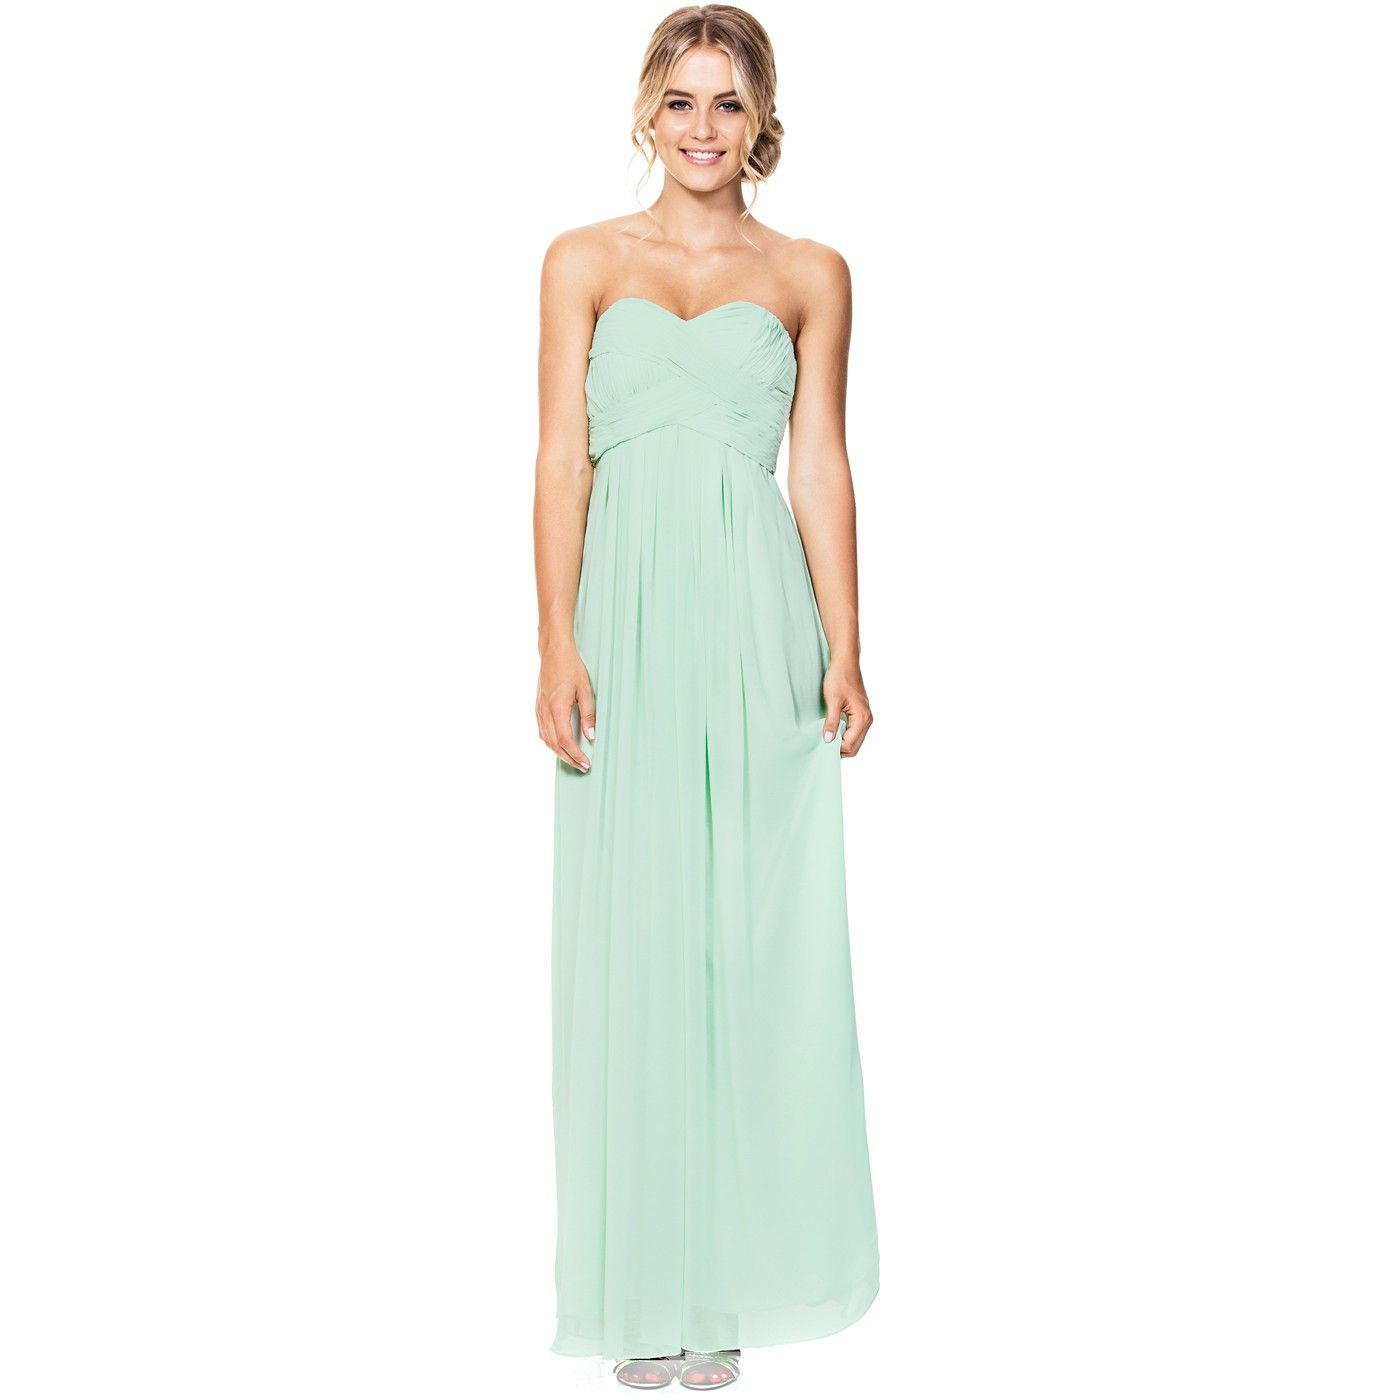 Langhem mona lisa mint formal dress swish clothing bridesmaids full length pastel mint evening dress is the ideal bridesmaid dress with a strapless sweetheart neckline perfect for any formal occasion shop this mint ombrellifo Image collections